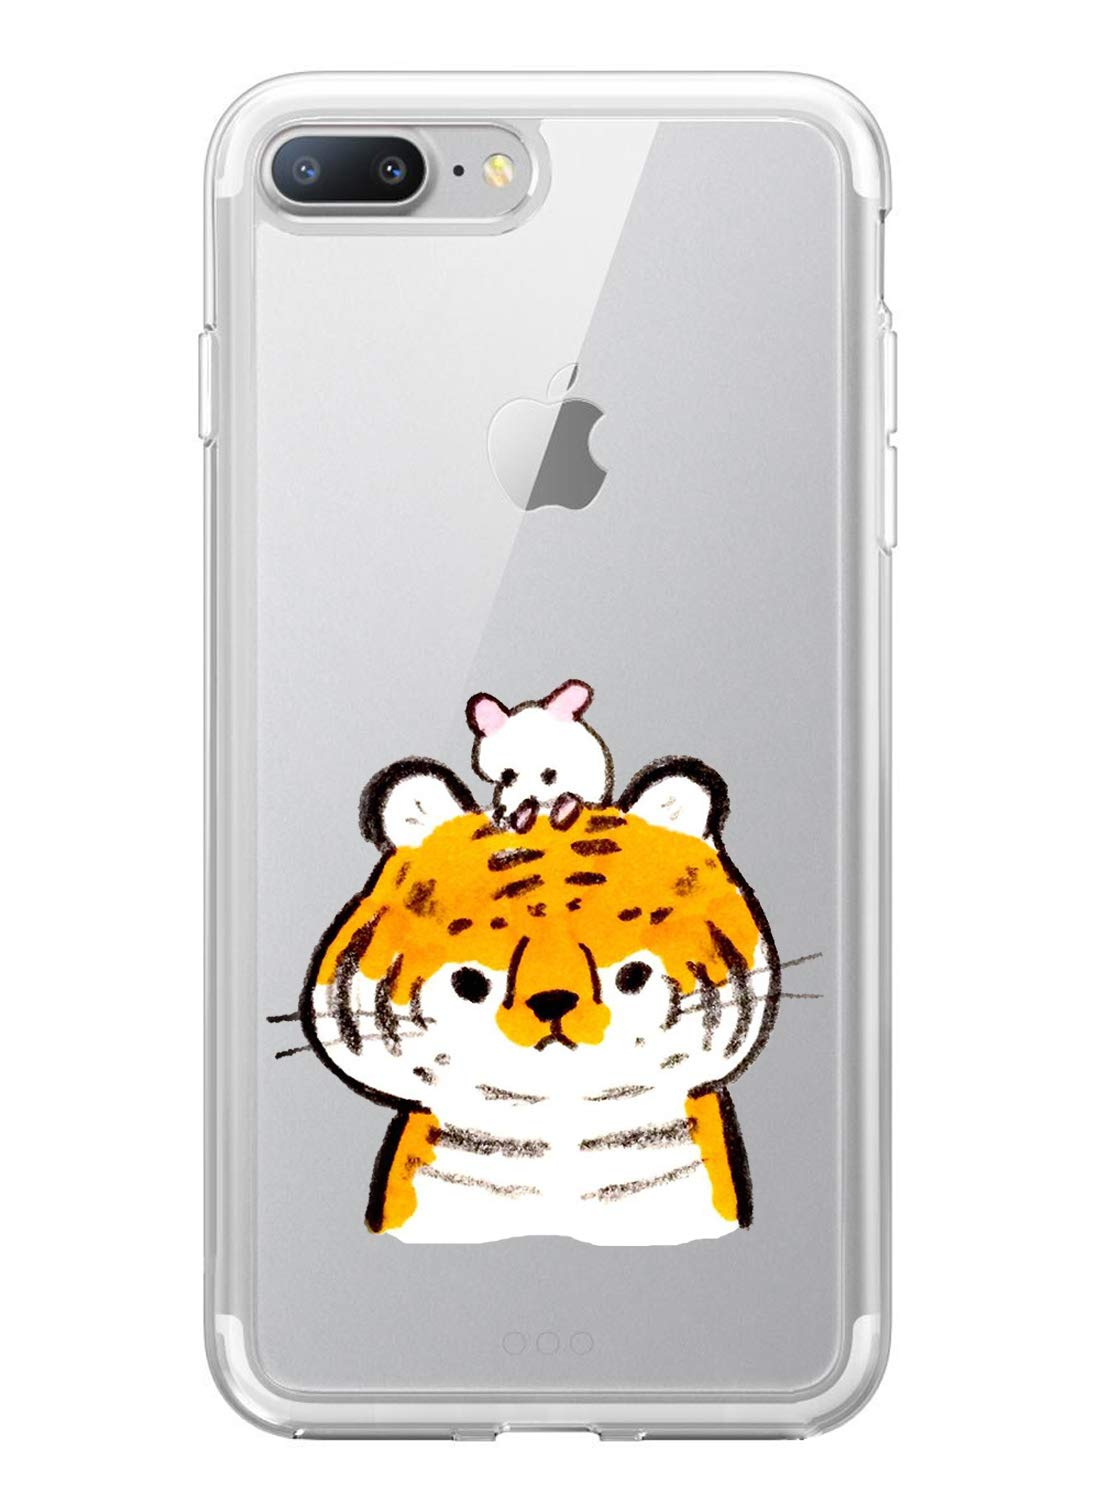 Oihxse Case Compatible with iPhone 5/5S/SE 4 inch Clear with Chic Design, Soft TPU Silicone Ultra Thin Slim Fit [Shockproof] [Anti-fingerprint] Crystal Transparent Case Cover Bumper Skin, Tiger Oihxse ✨【SLIM FIT】ONLY compatible with iPhone 5/5S/SE without bubbles, bubbles smudges, slippy and clinging, which provide a great hand feel & comfortable grip, easy put in and take off from pockets. ✨【CRYSTAL CLEAR】Cute and stylish pattern prints on the crystal transparent slim IPhone 5/5S/SE case, not only shows off the original beauty but adds more chic, fashion and elegant sense, makes you stand out from crowd and eye-catching. ✨【PREMIUM MATERIAL】Made from nontoxic and tasteless flexible TPU material, non fade and peel off. It can resist Iphone 5/5S/SE bumps, drops, scratches, impacts, shocks and fingerprint. 7